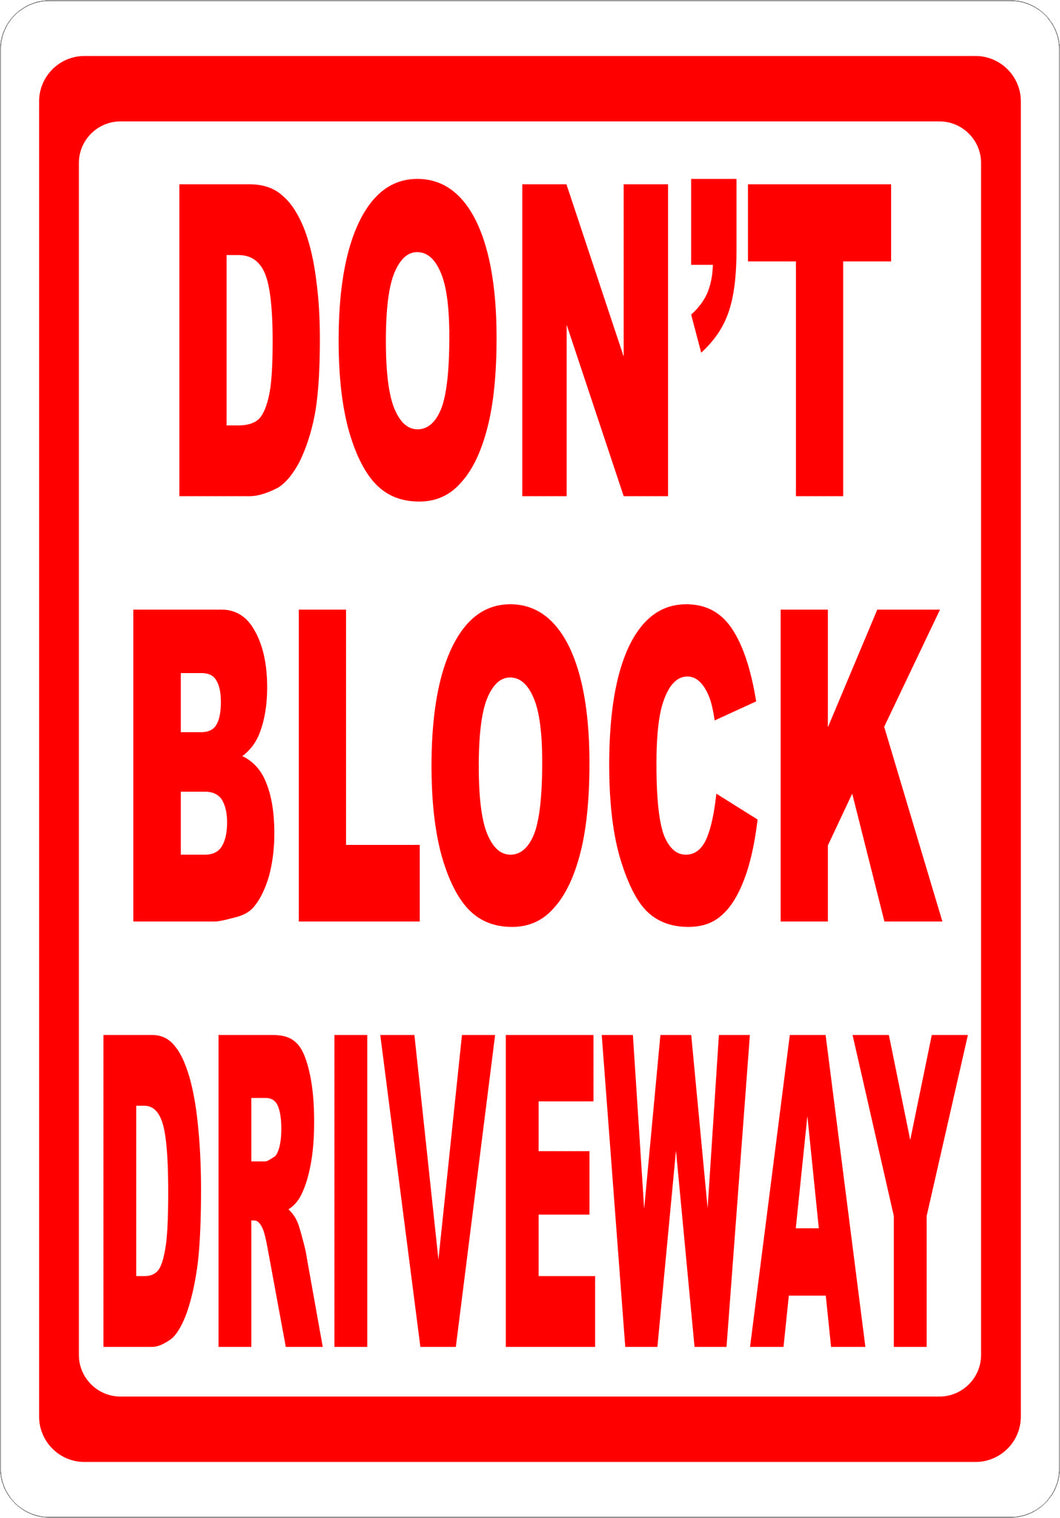 Don't Block Driveway Sign - Signs & Decals by SalaGraphics